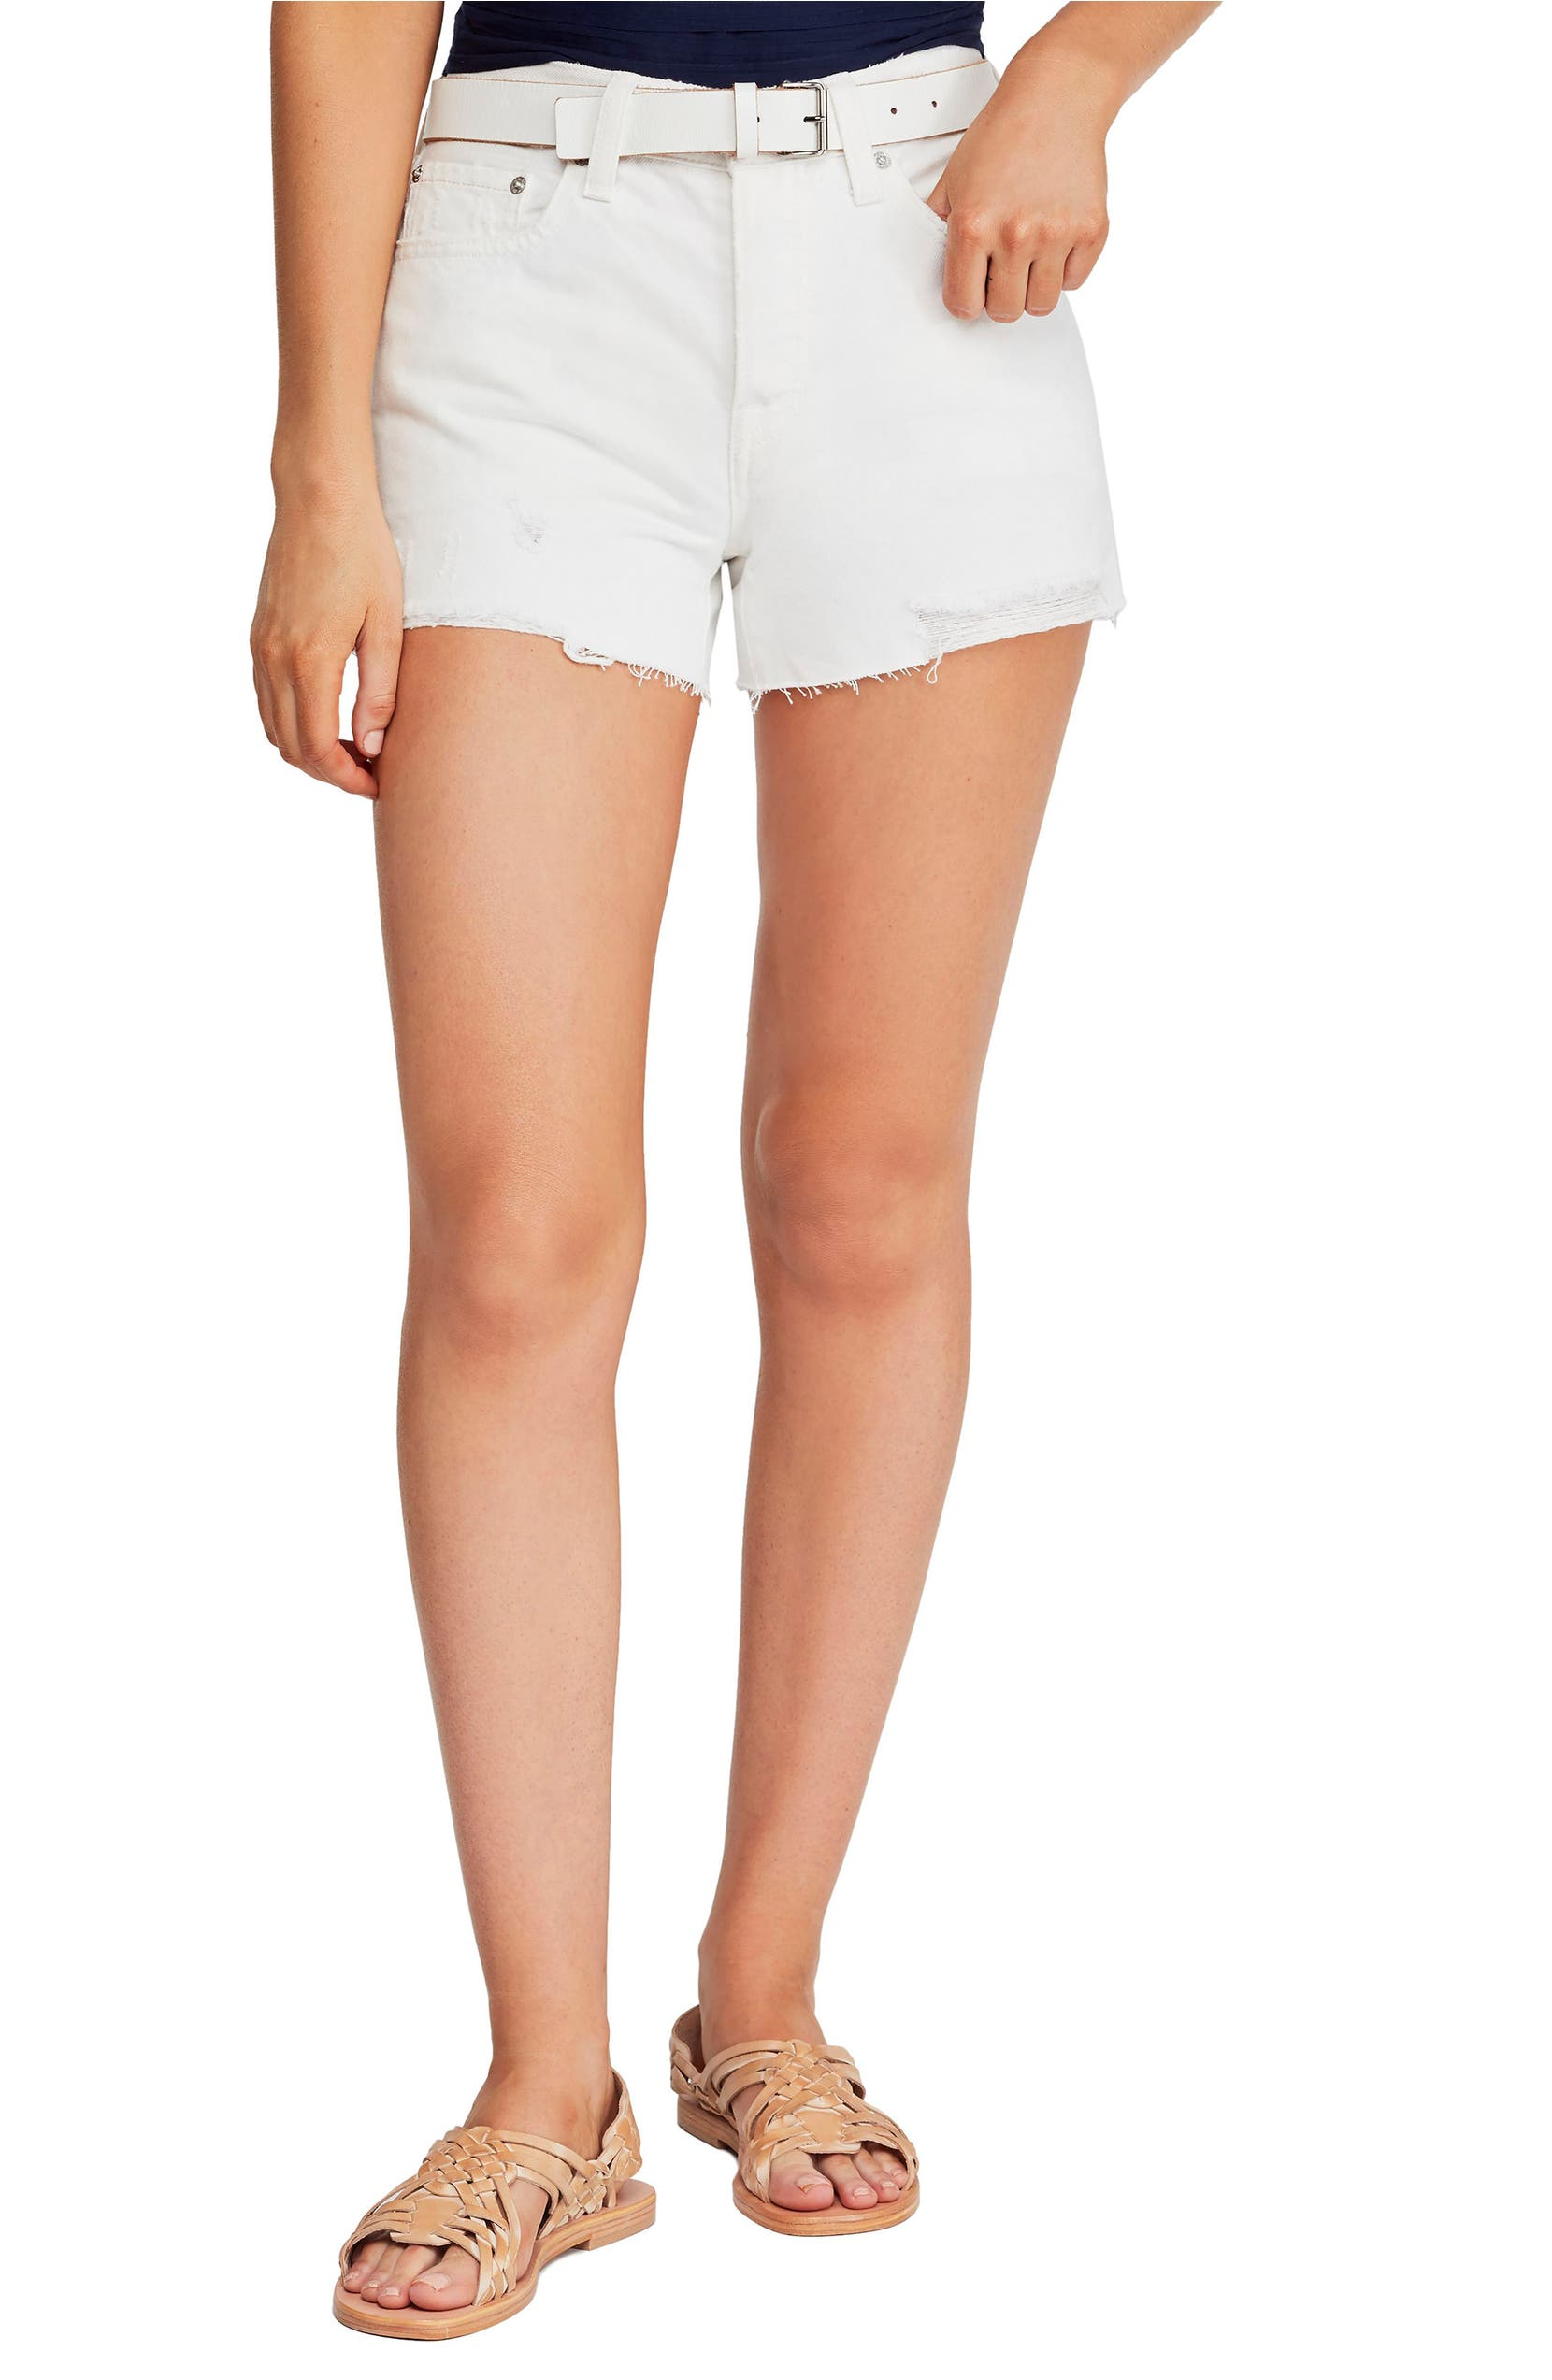 357aedeb17 Free People Sofia Cutoff Denim Shorts | Nordstrom